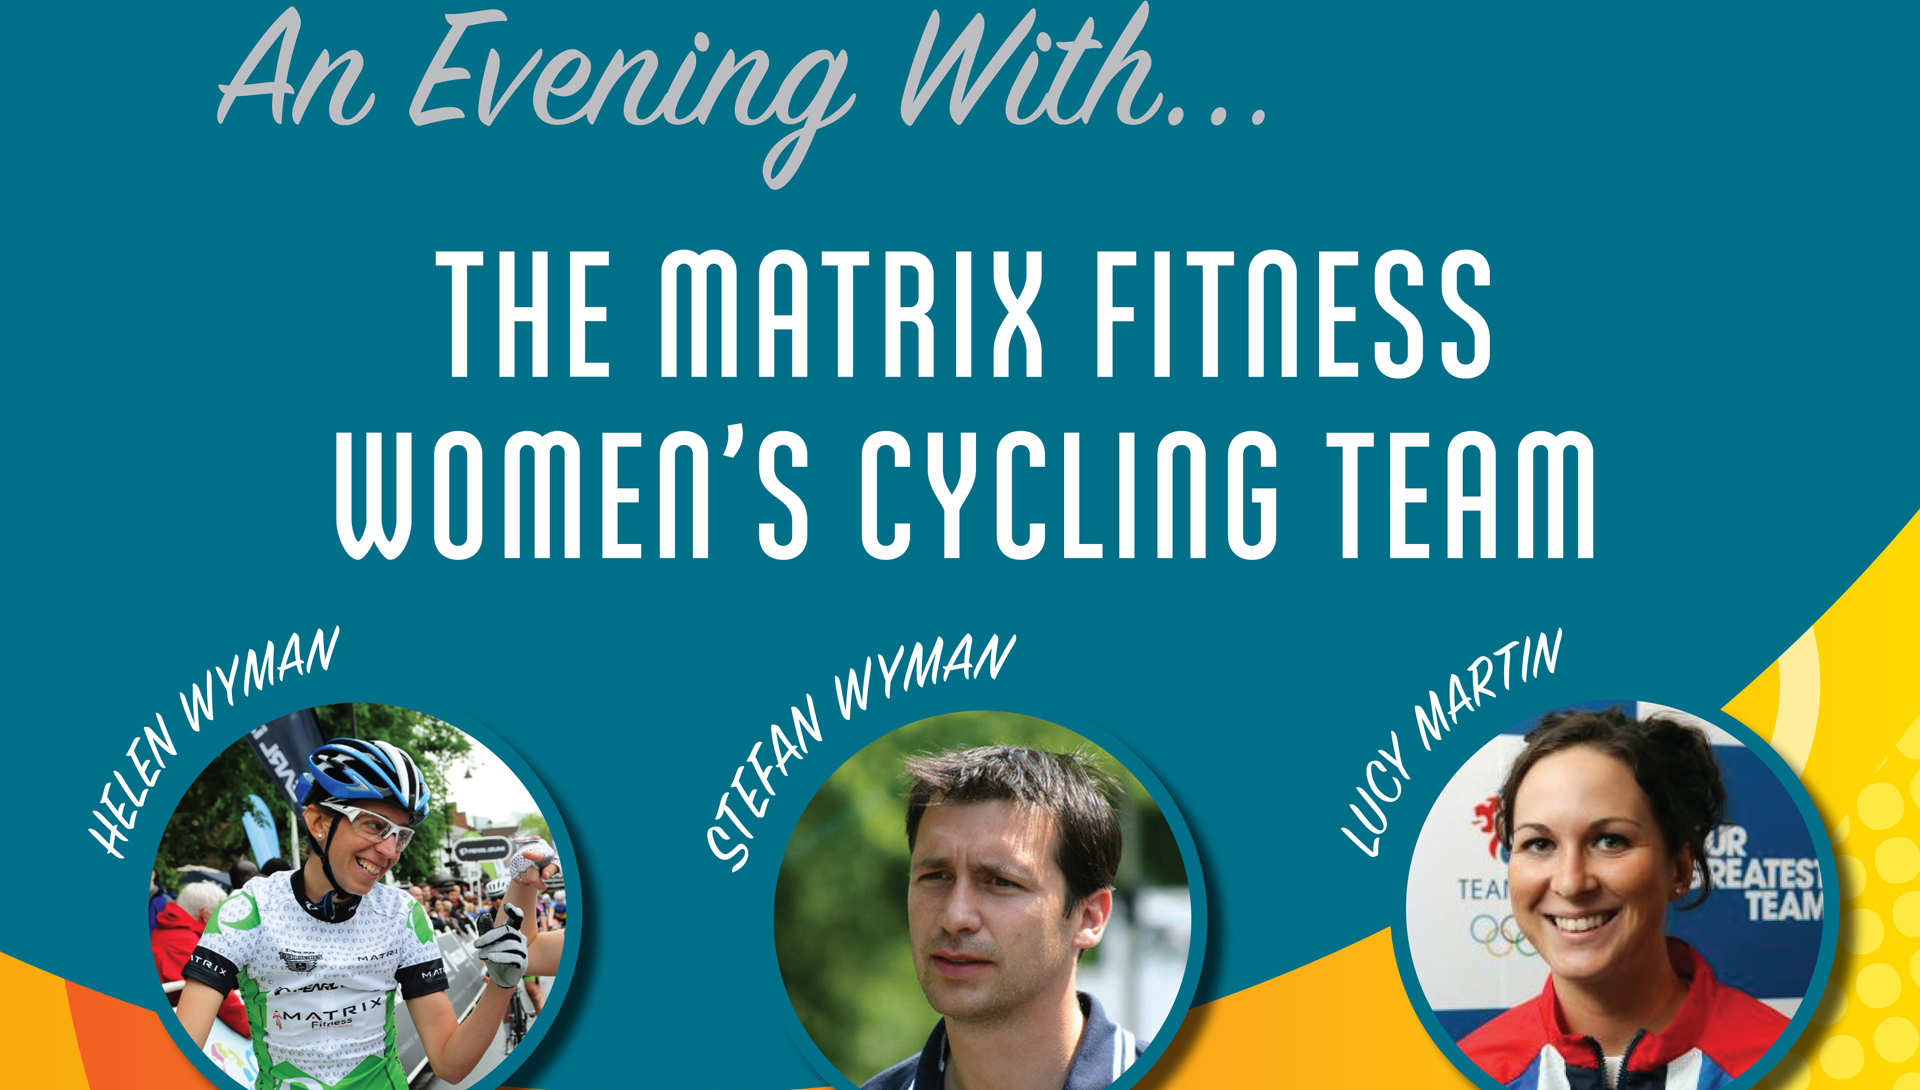 An Evening with…the Matrix Fitness cycling team